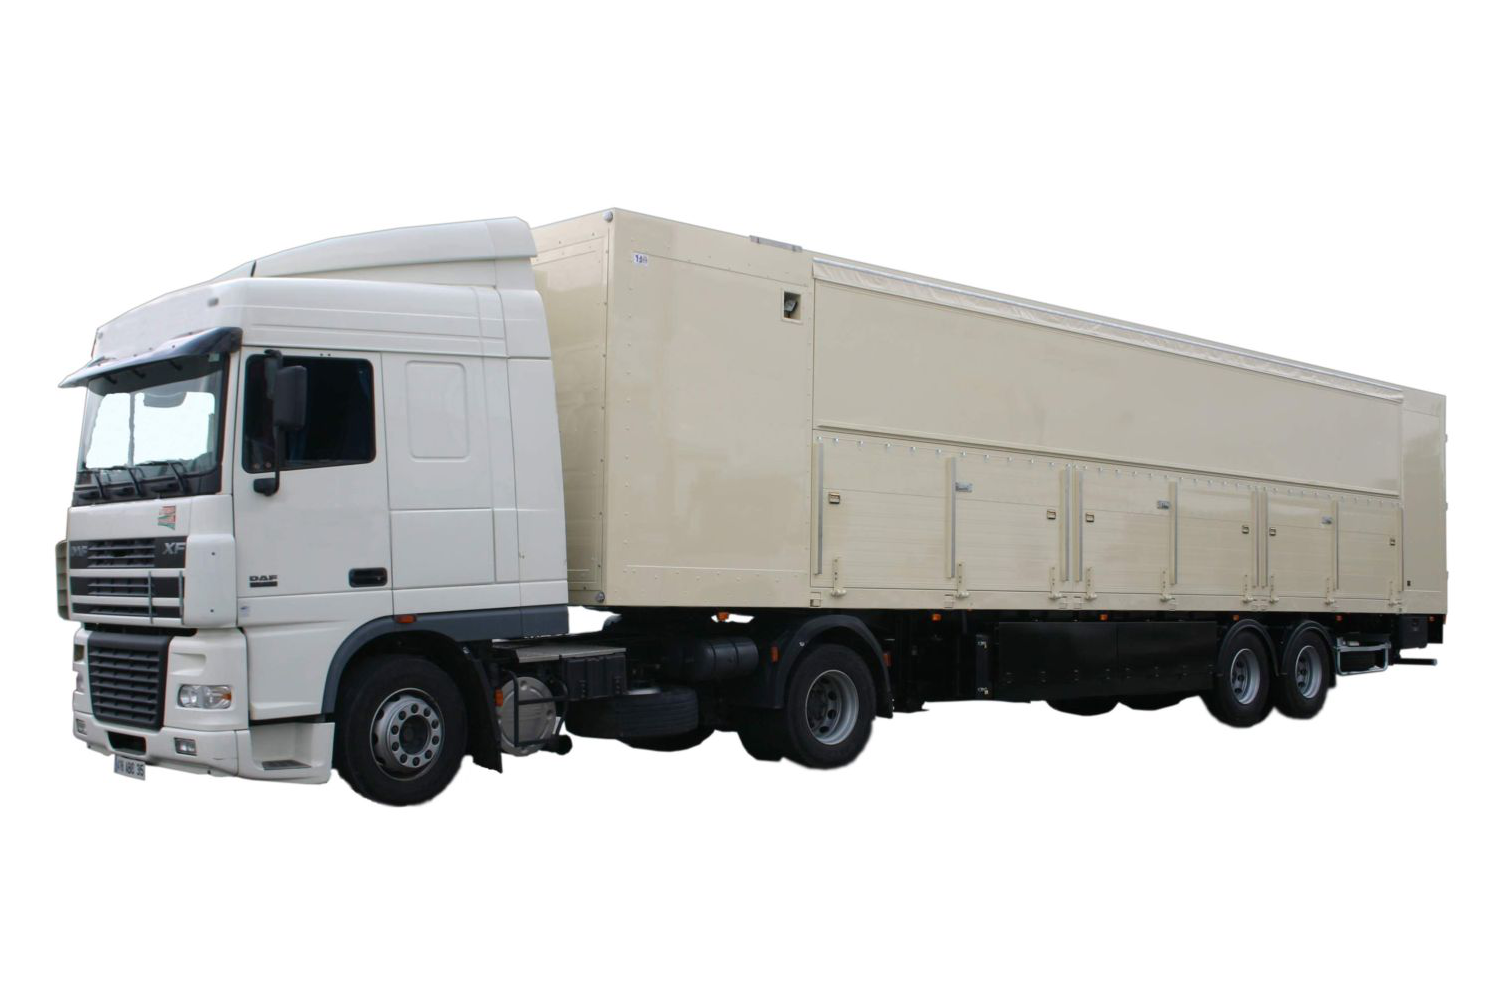 4729038795 additionally Reefer Air Chute further utleasing as well Joes Truck House further Custom Reefer Trailer. on semi truck reefer trailers